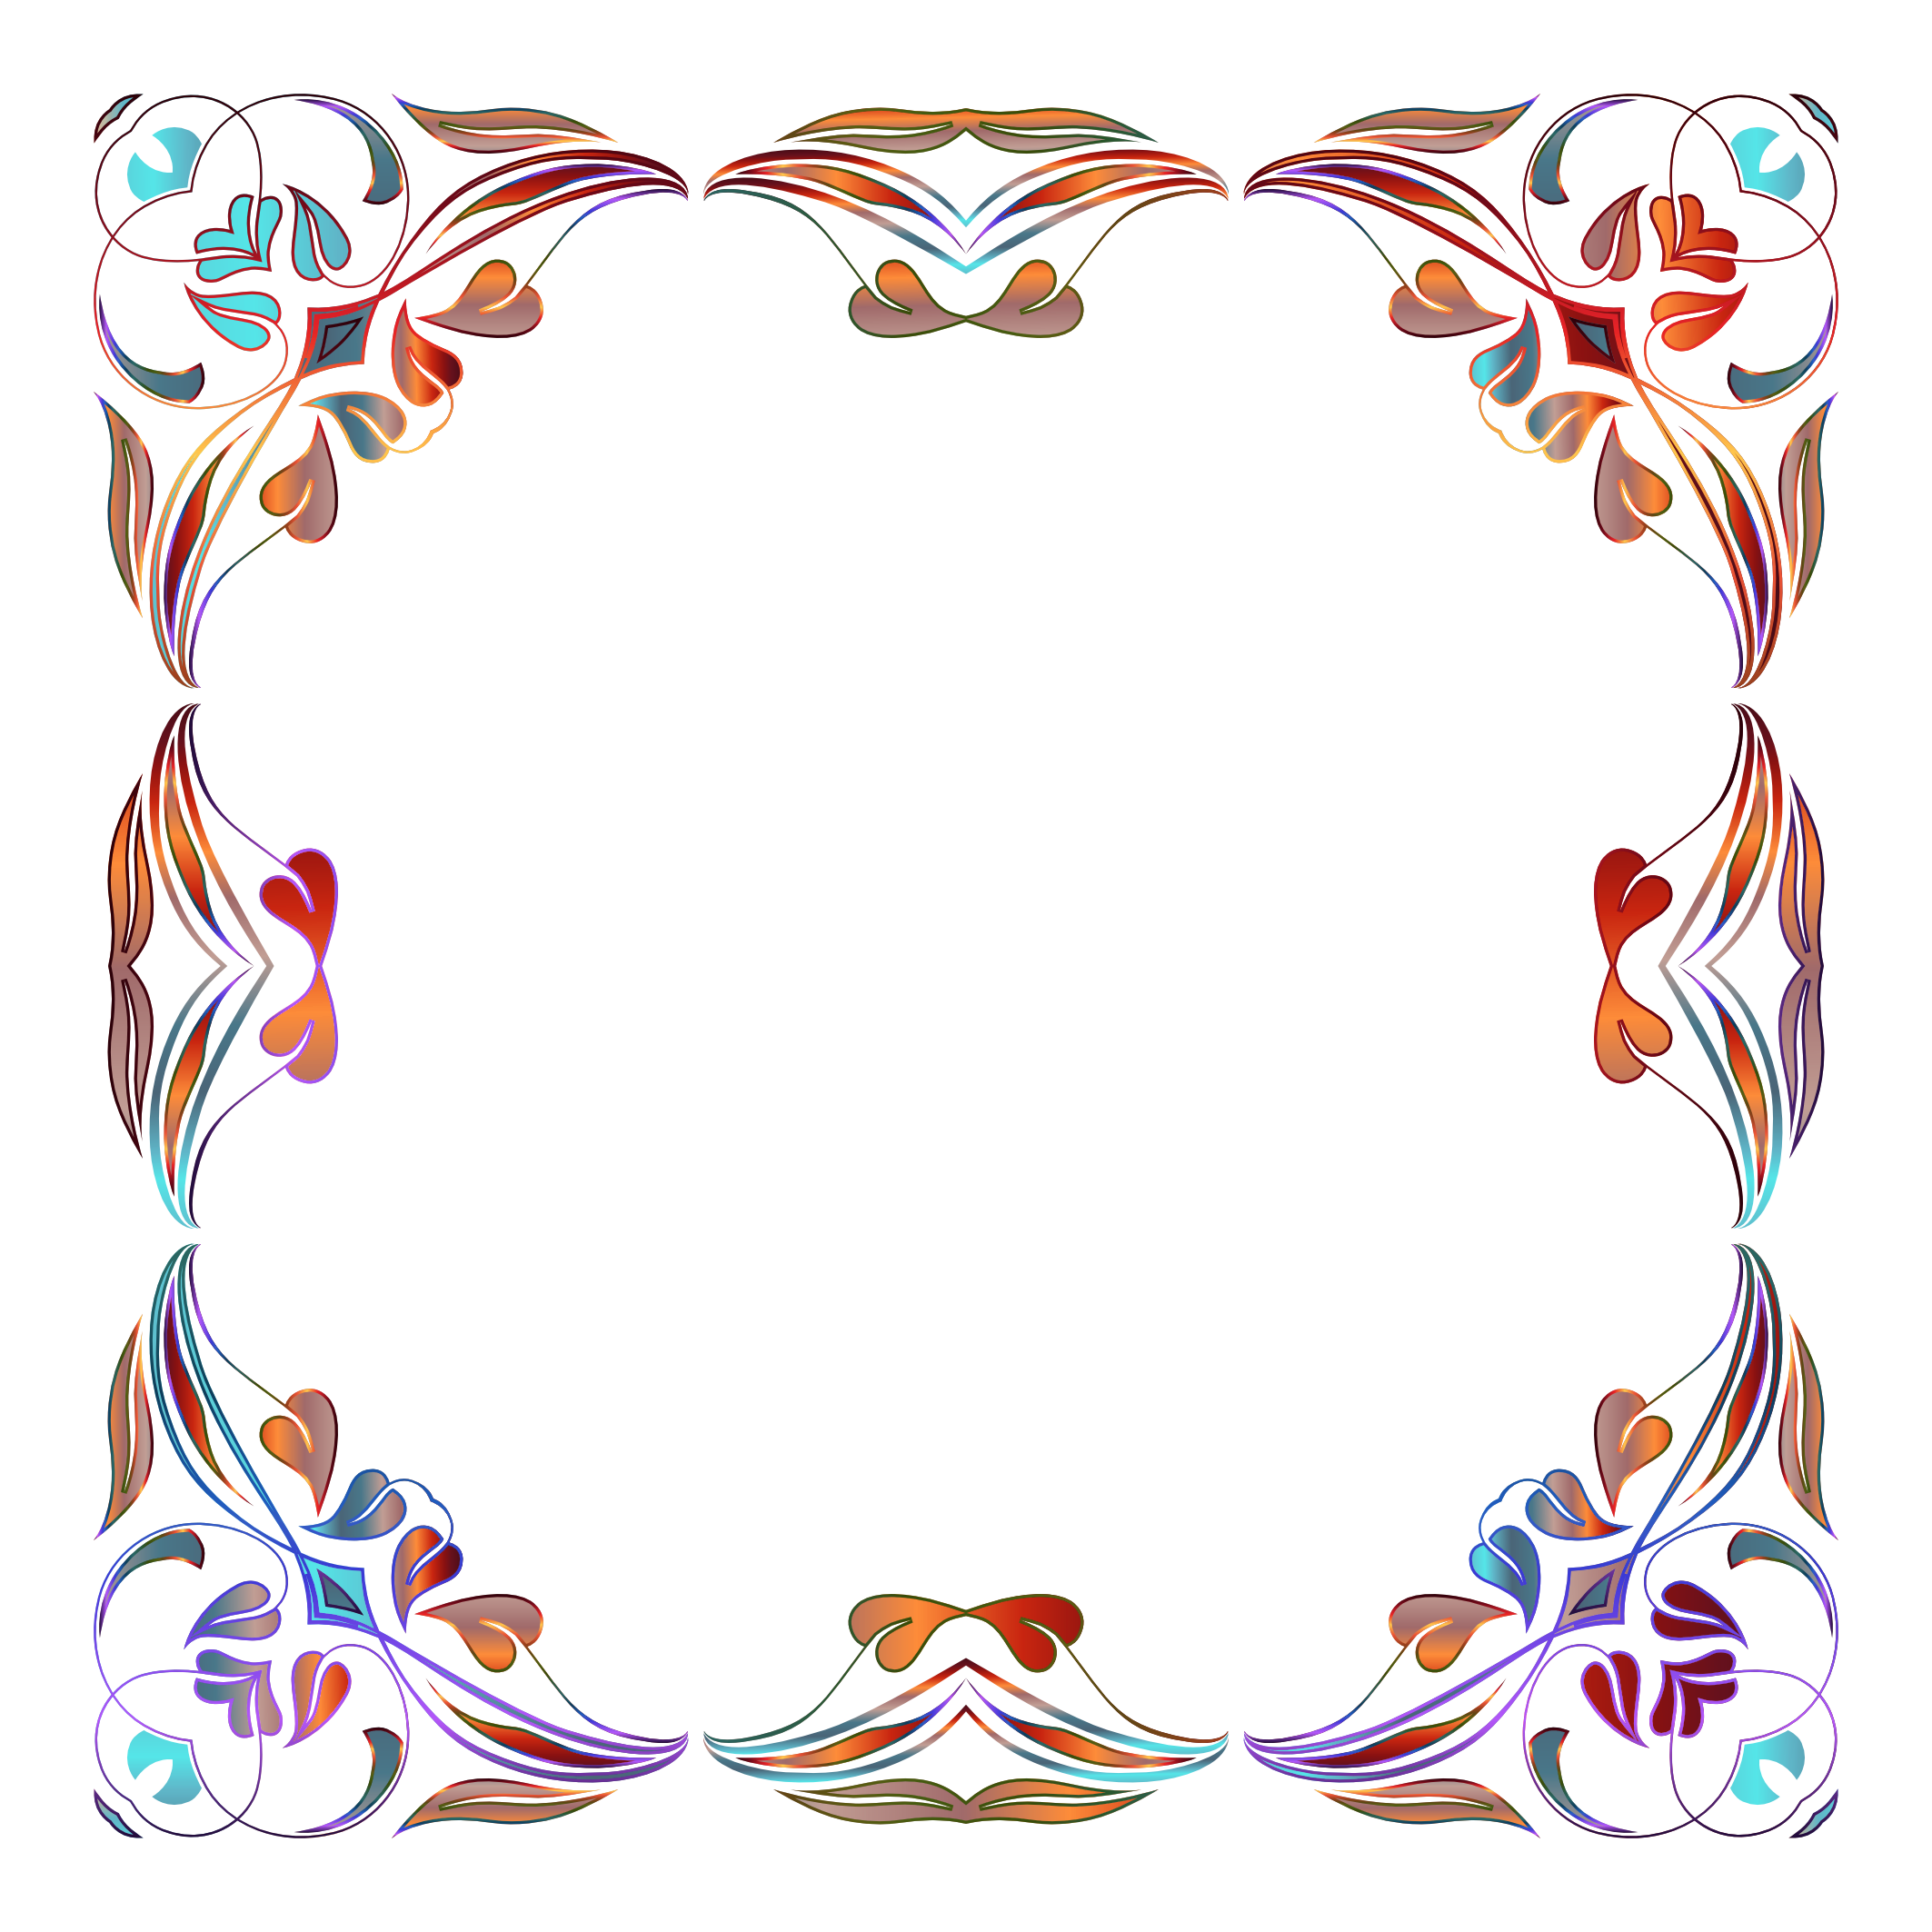 floral pattern border picture #8203